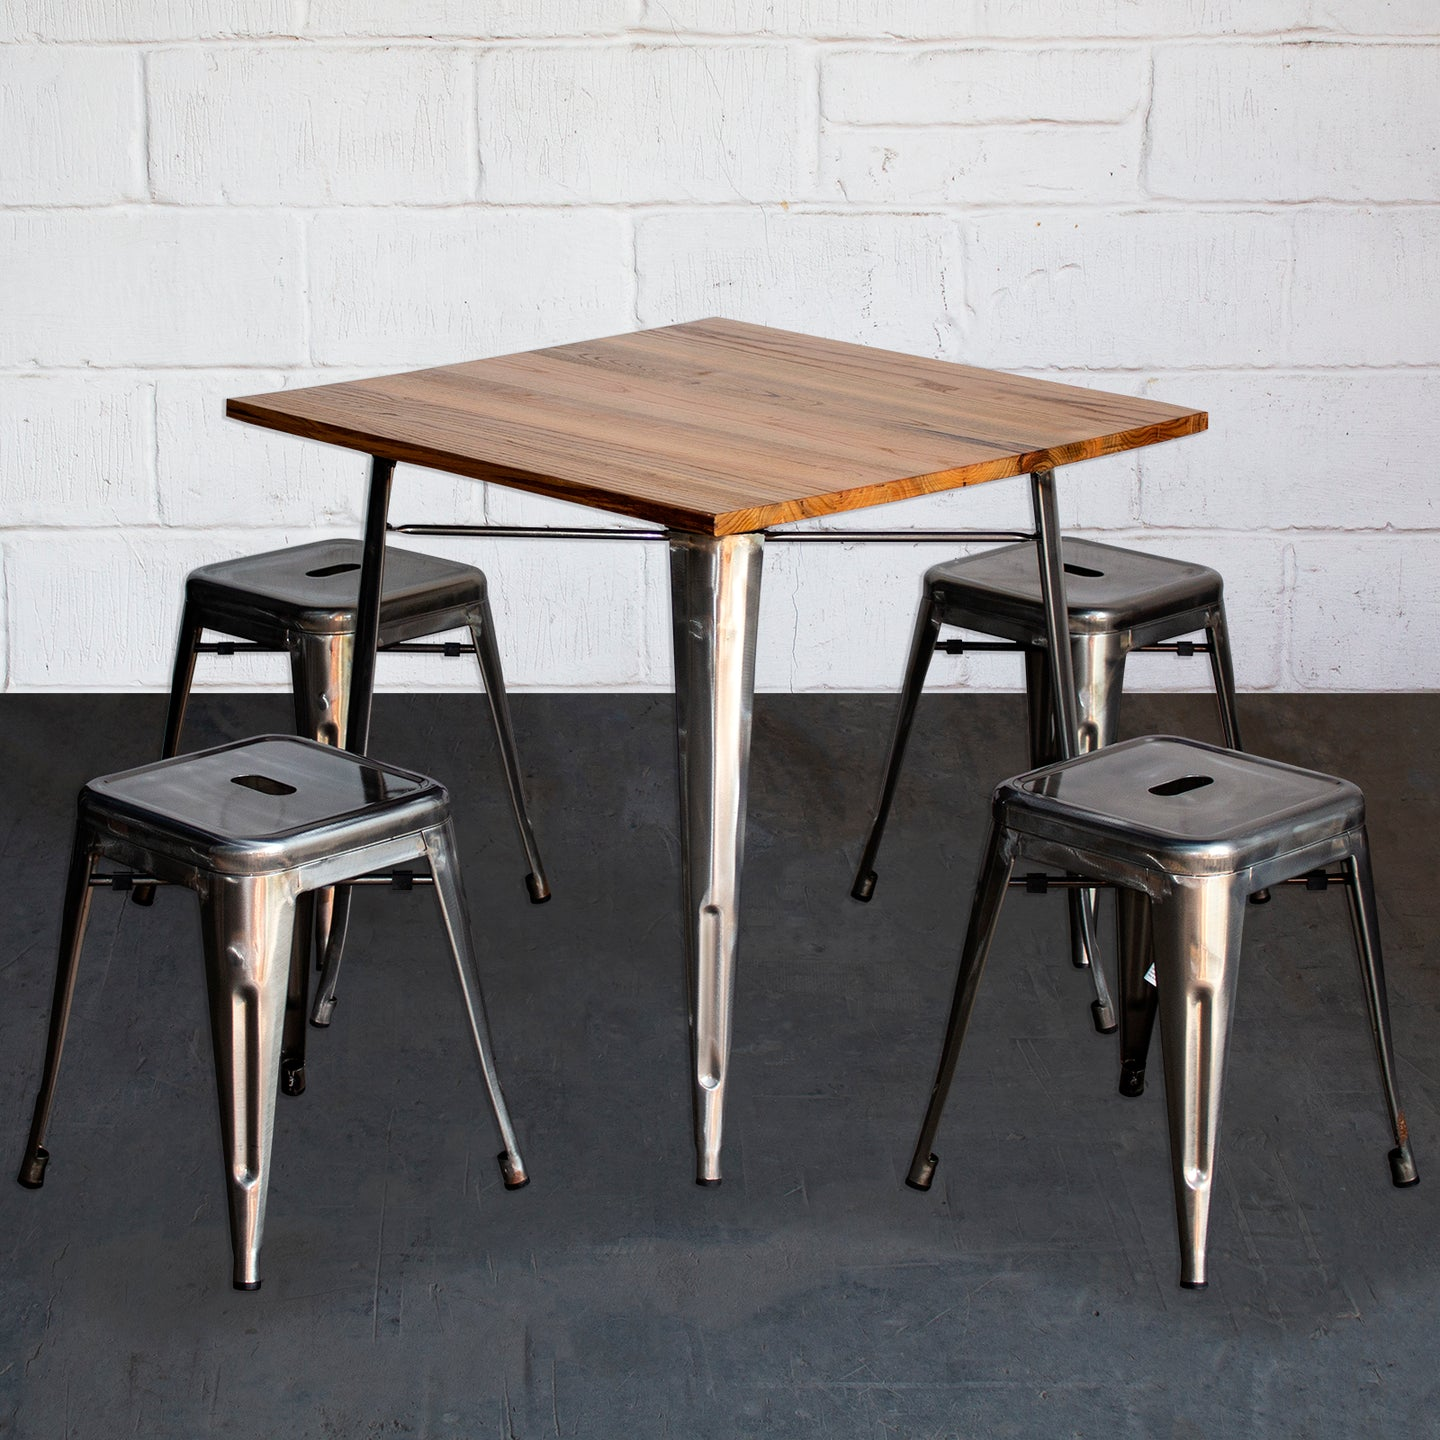 5PC Enna Table & Castel Stool Set - Steel